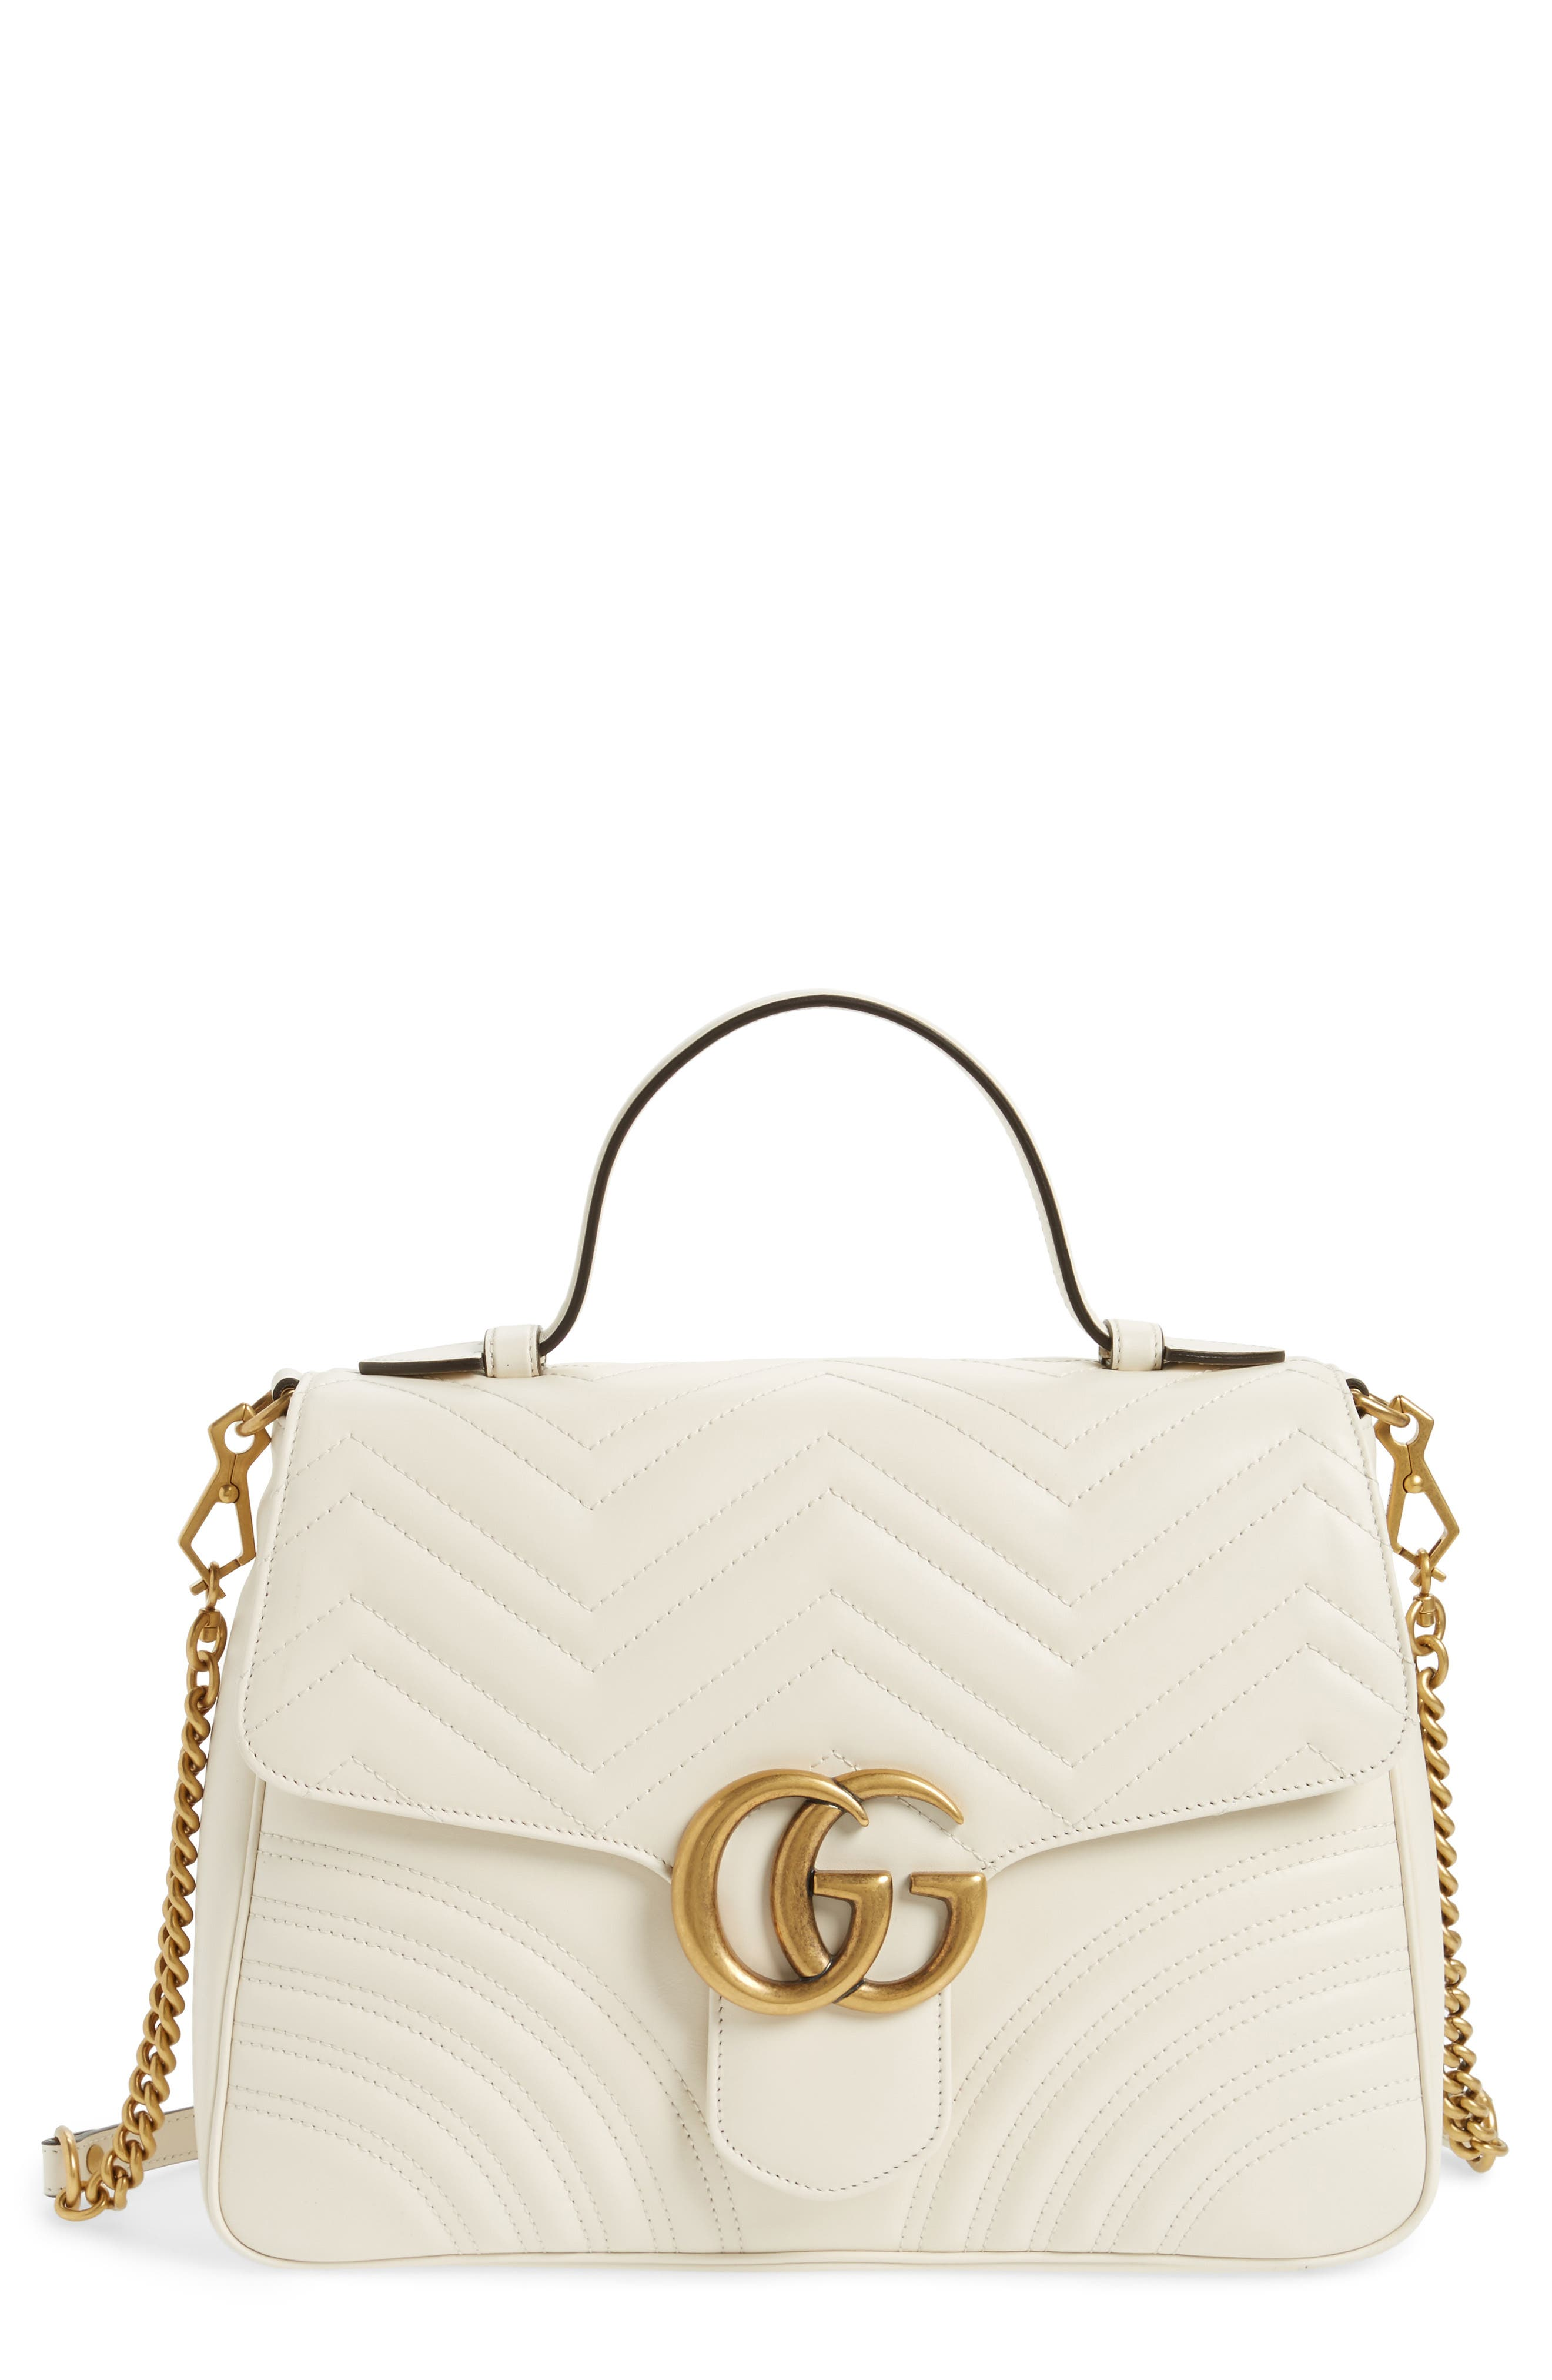 Alternate Image 1 Selected - Gucci Medium GG Marmont 2.0 Matelassé Leather Top Handle Bag